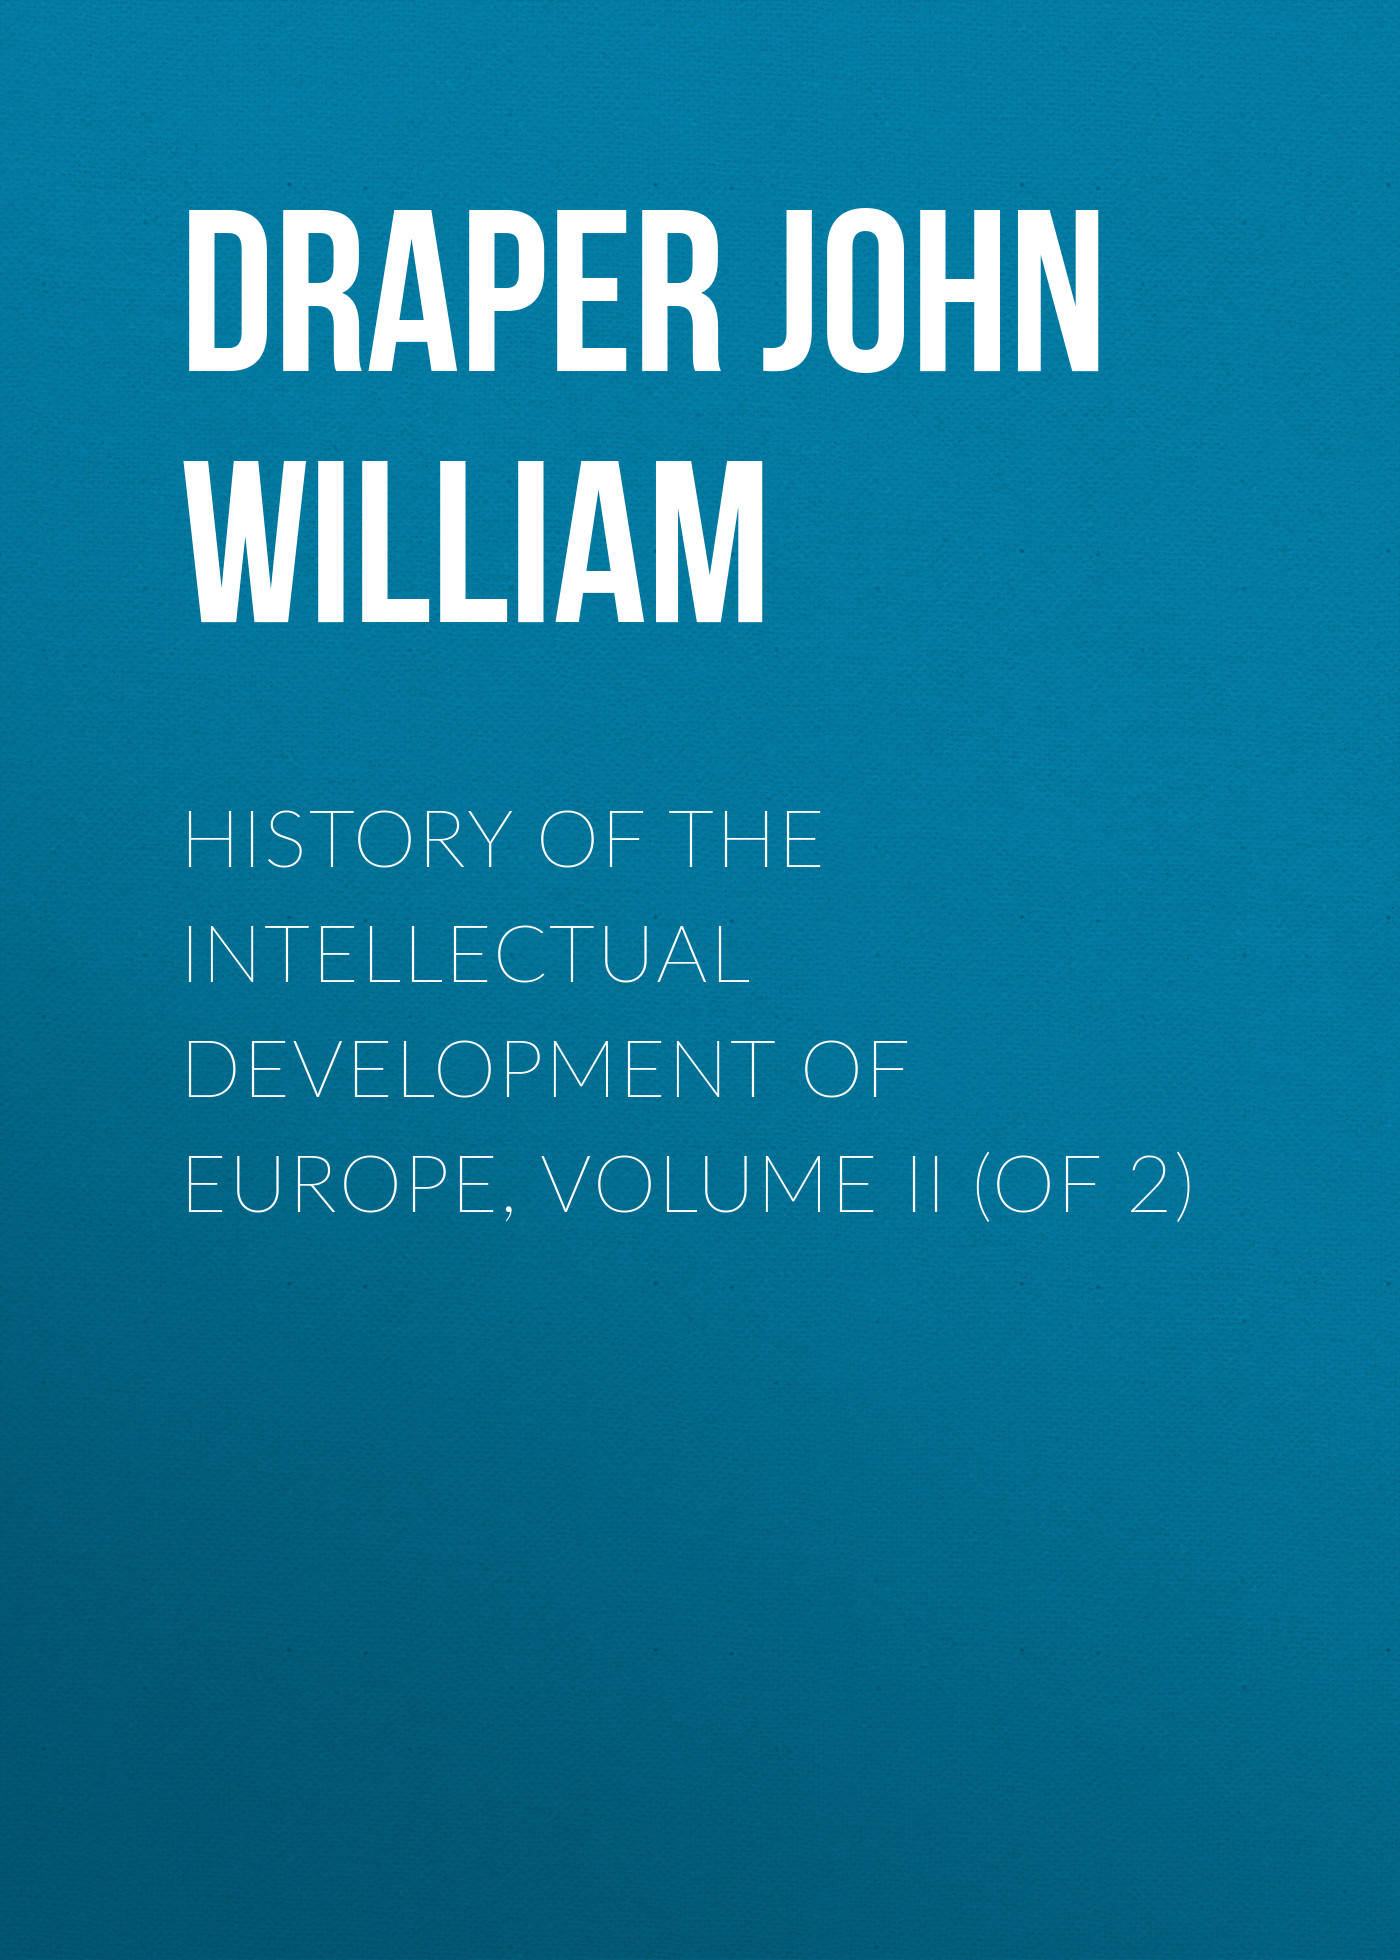 Draper John William History of the Intellectual Development of Europe, Volume II (of 2) james william the principles of psychology volume 2